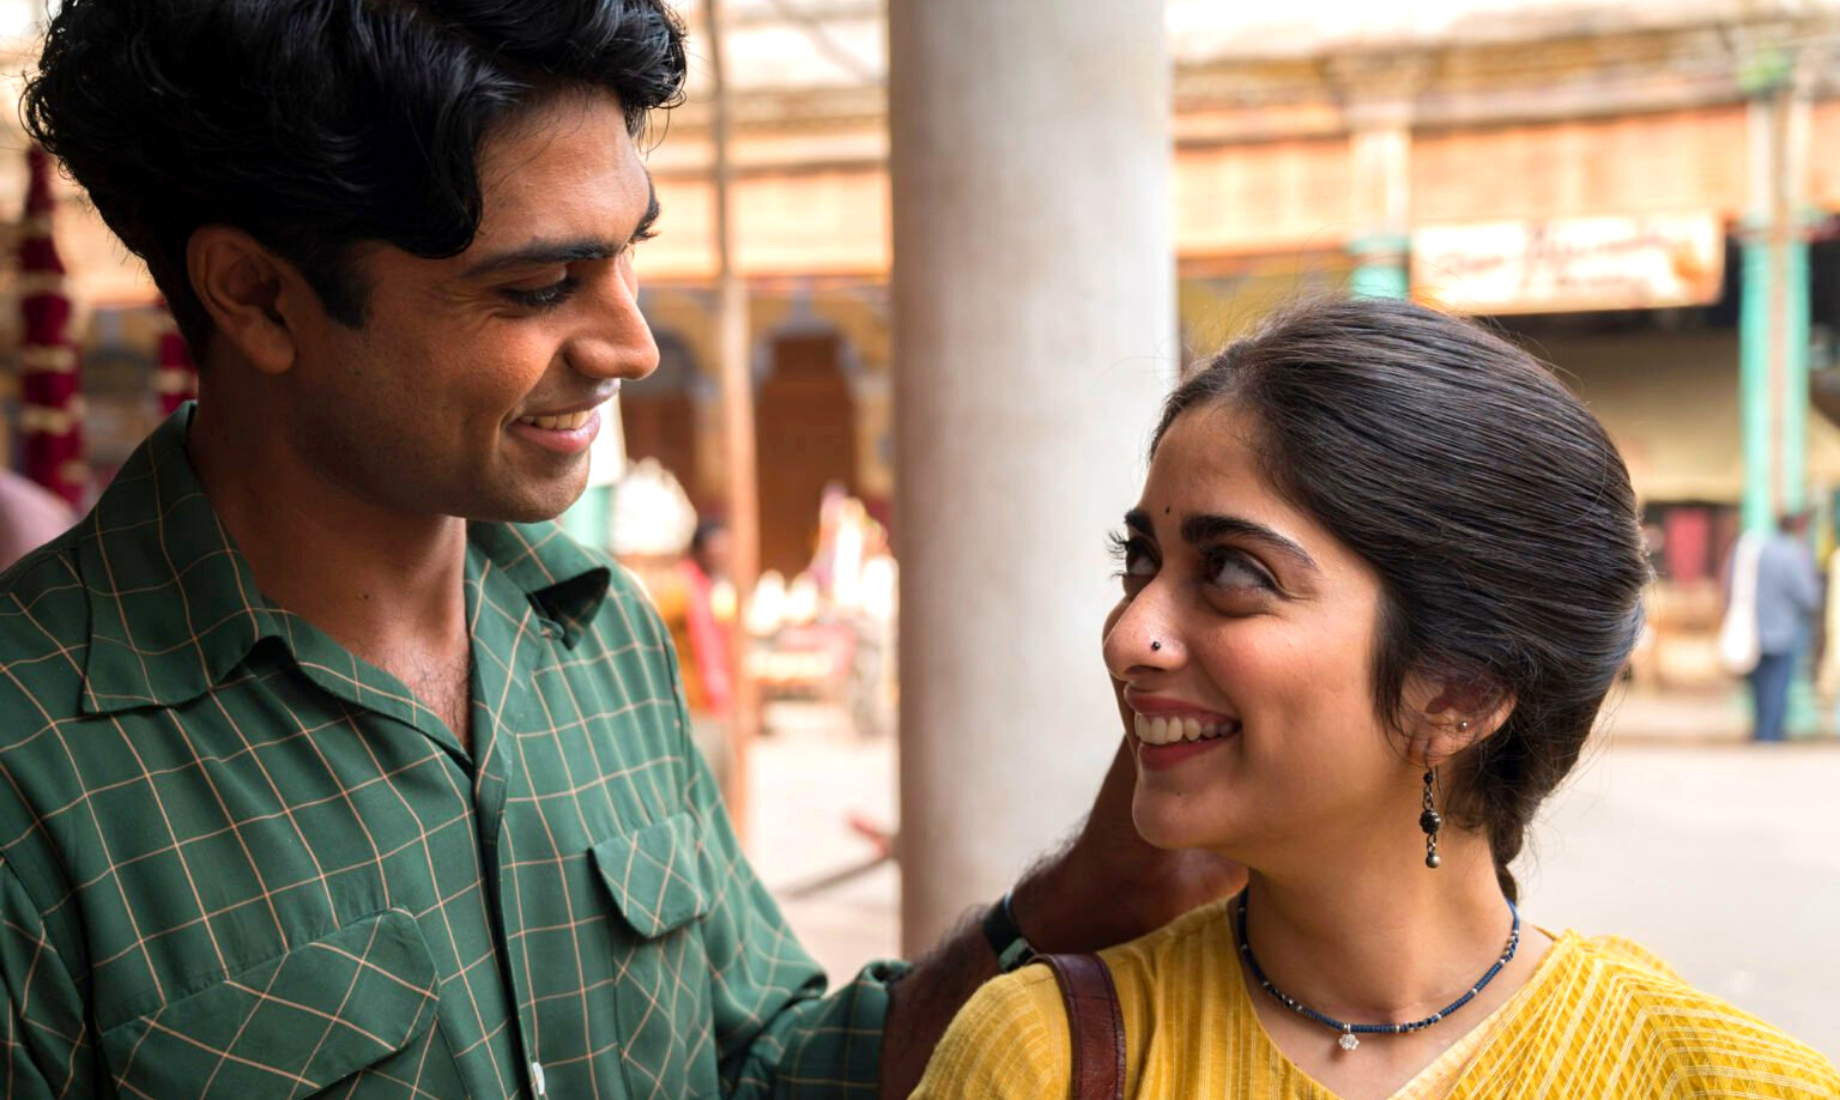 'Love jihad' is the conspiracy fuelling the 'A Suitable Boy' backlash